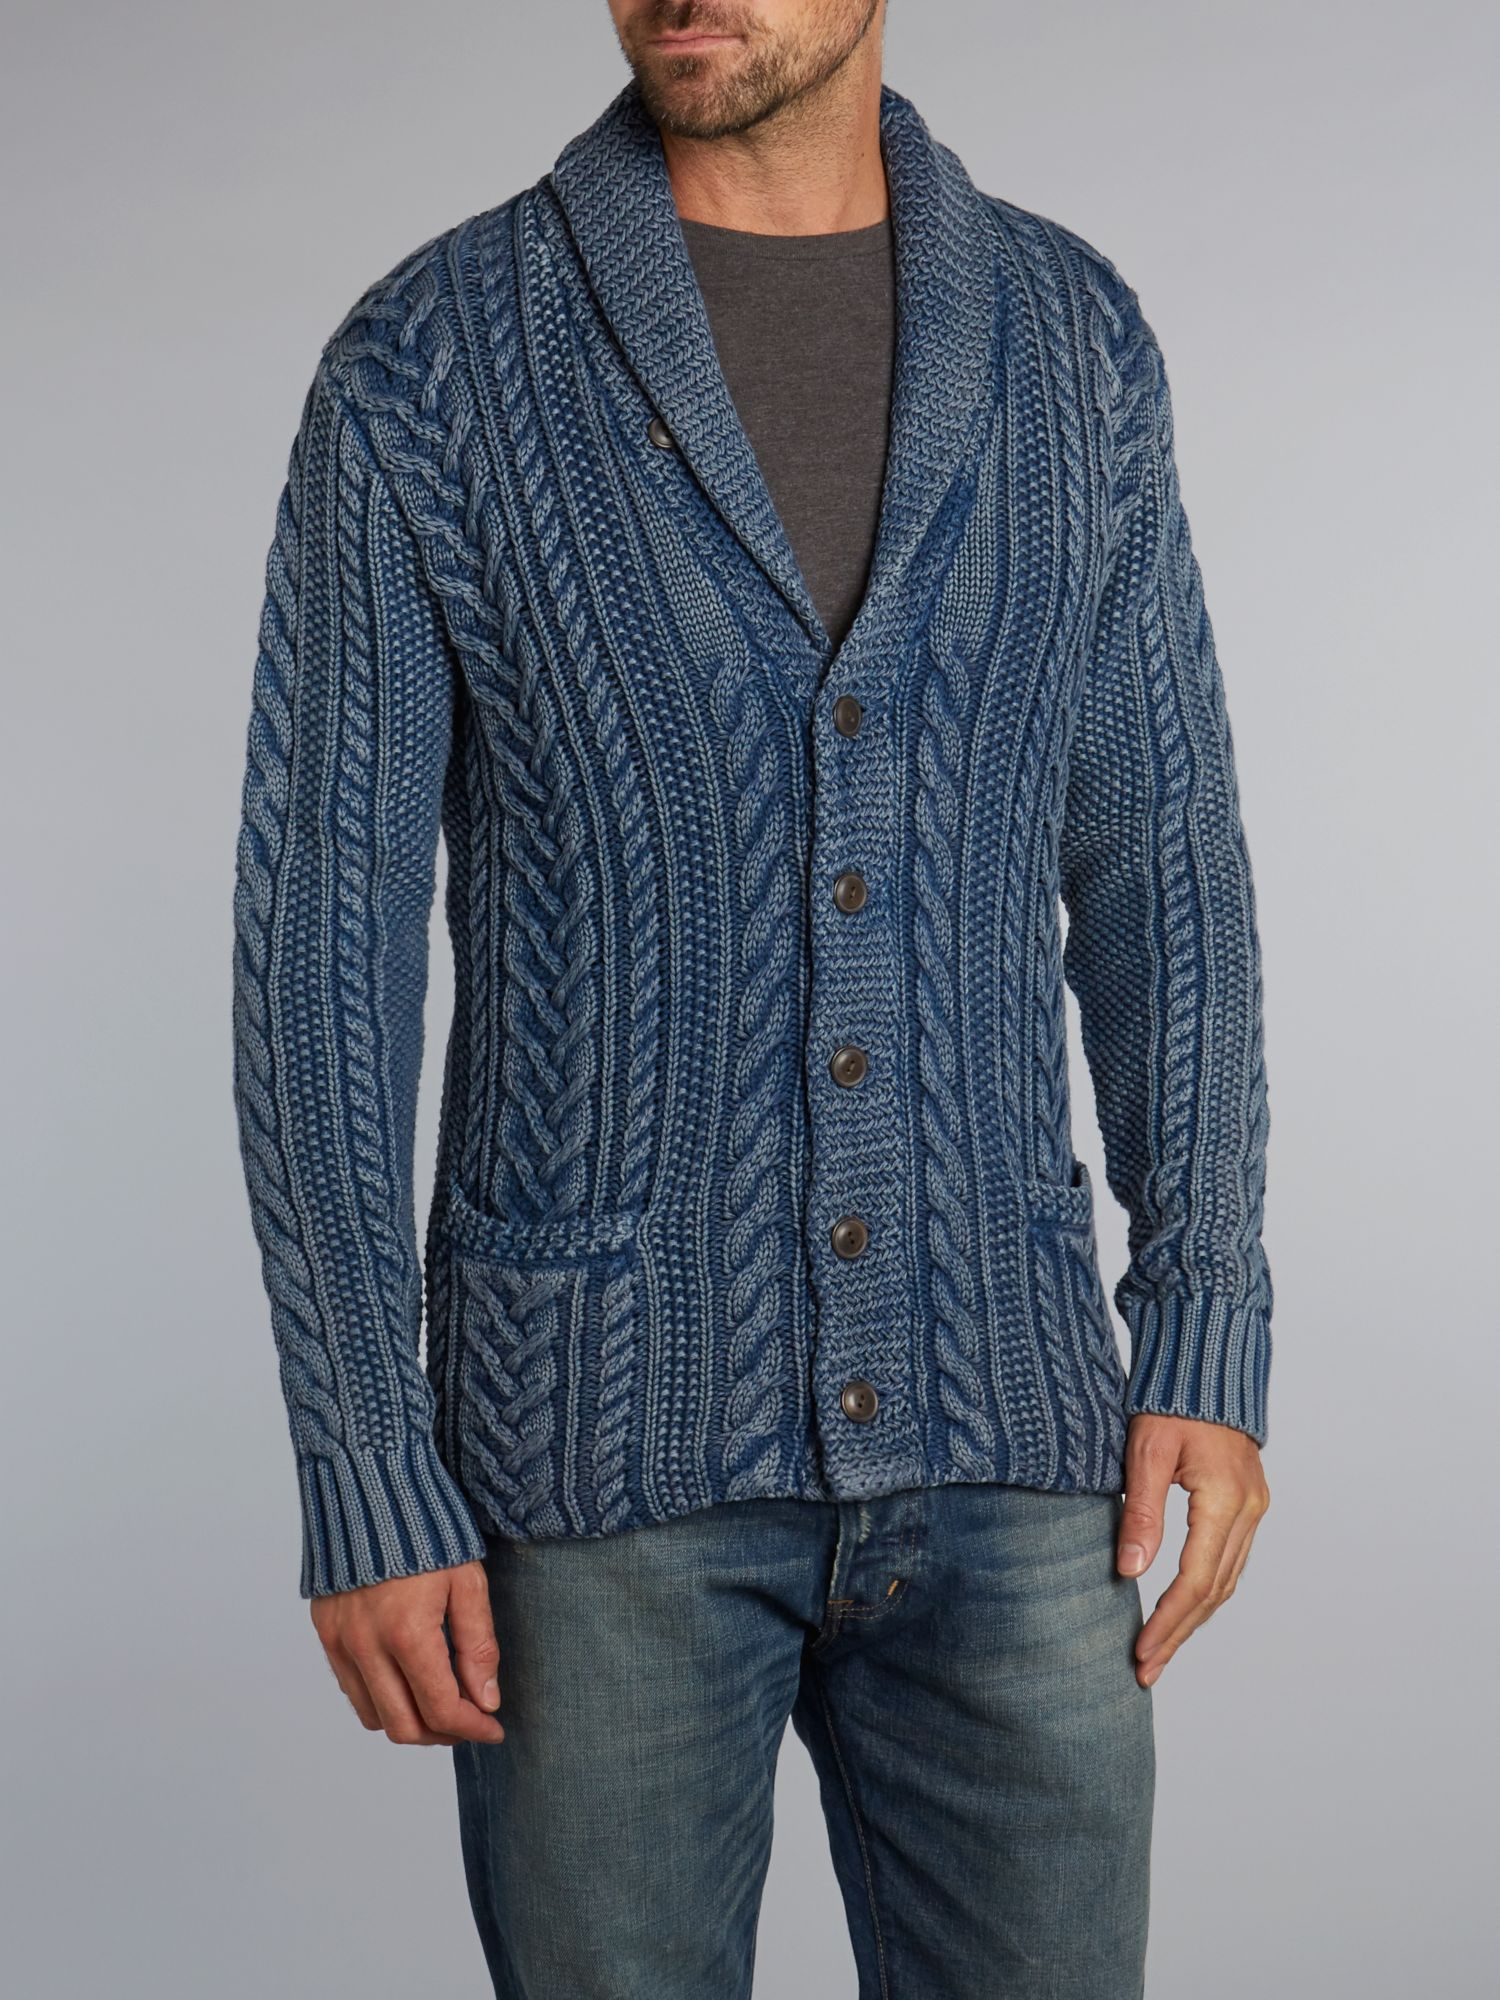 Knitting Pattern For Shawl Sweater : Denim & supply ralph lauren Cable Knit Shawl Cardigan in Blue for Men Lyst